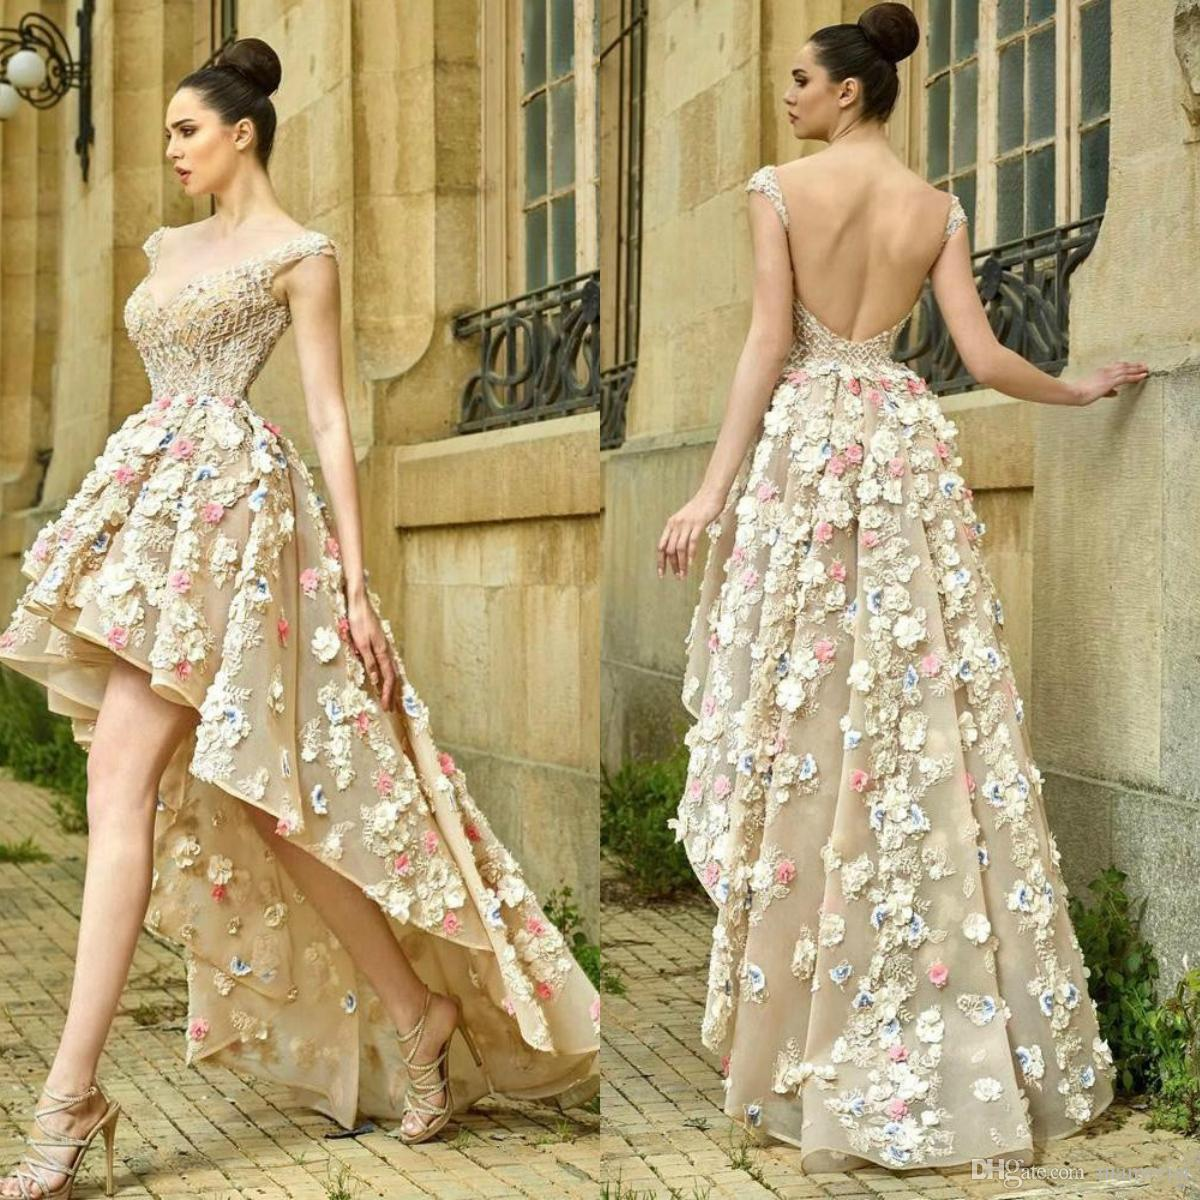 Gorgeous High Low Prom Dresses 3D Flower Appliqued Crystal Beads Lace Evening Gowns Illusion Organza Women Special Occasion Plus Size Dress